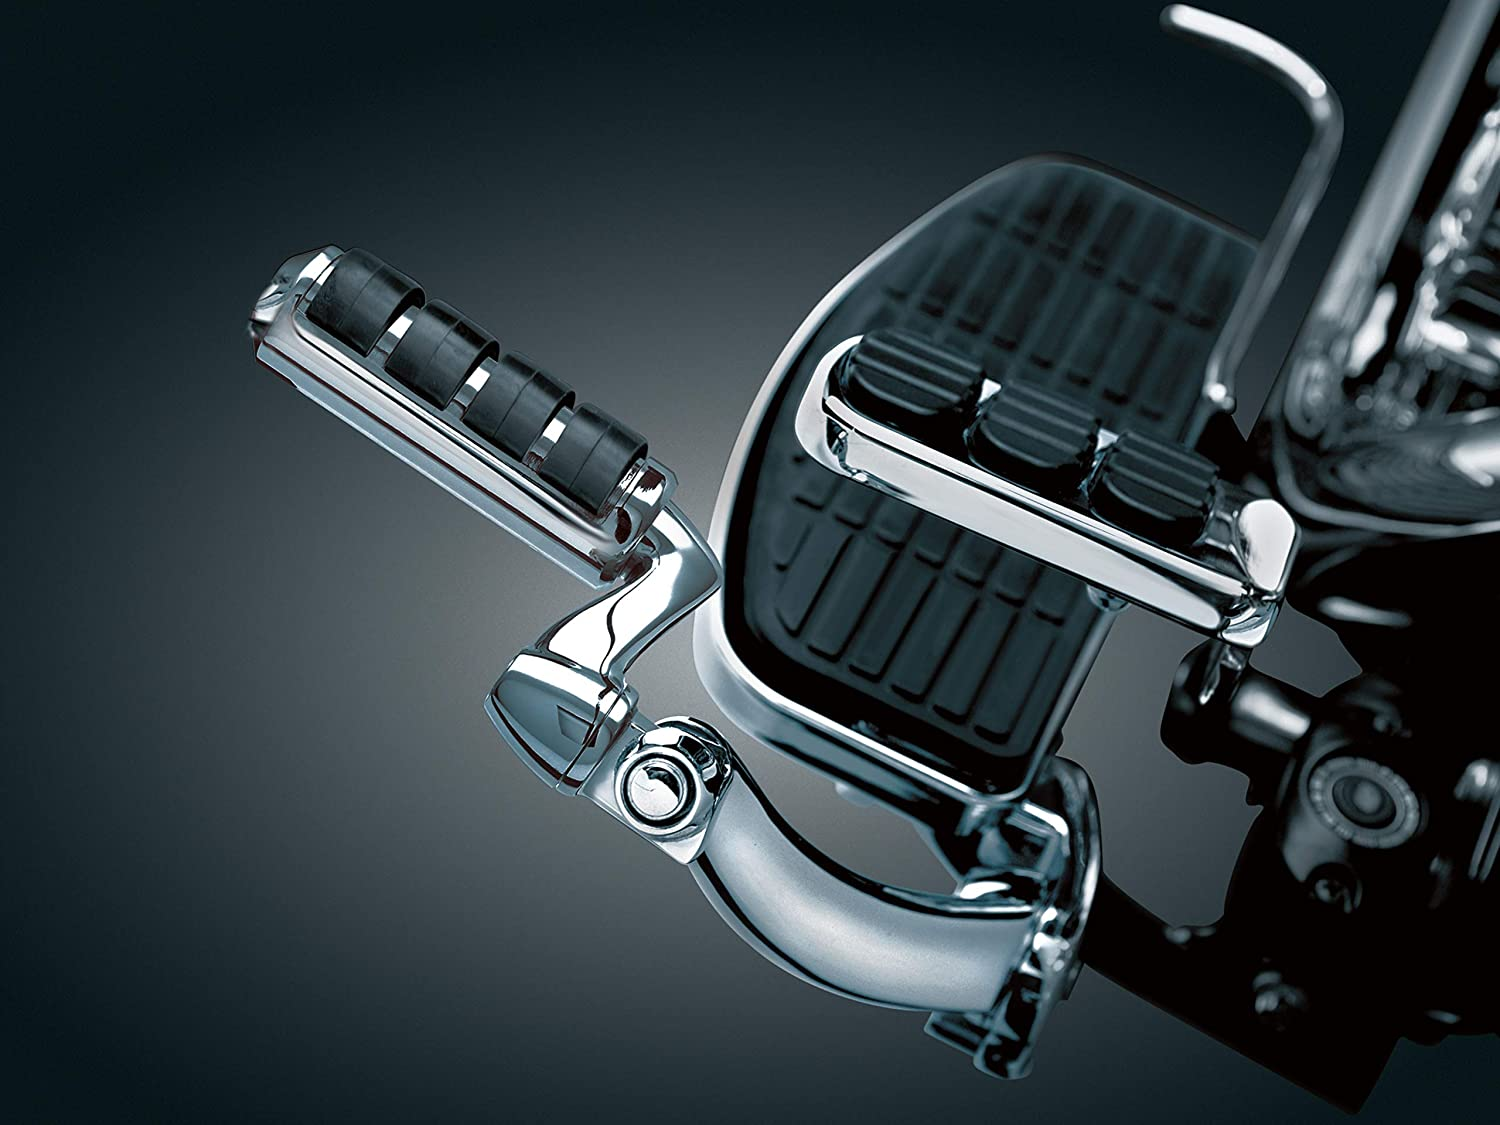 Small Chrome 1 Pair Kuryakyn 8000 Motorcycle Footpegs: Premium ISO Pegs with Male Mount Adapters